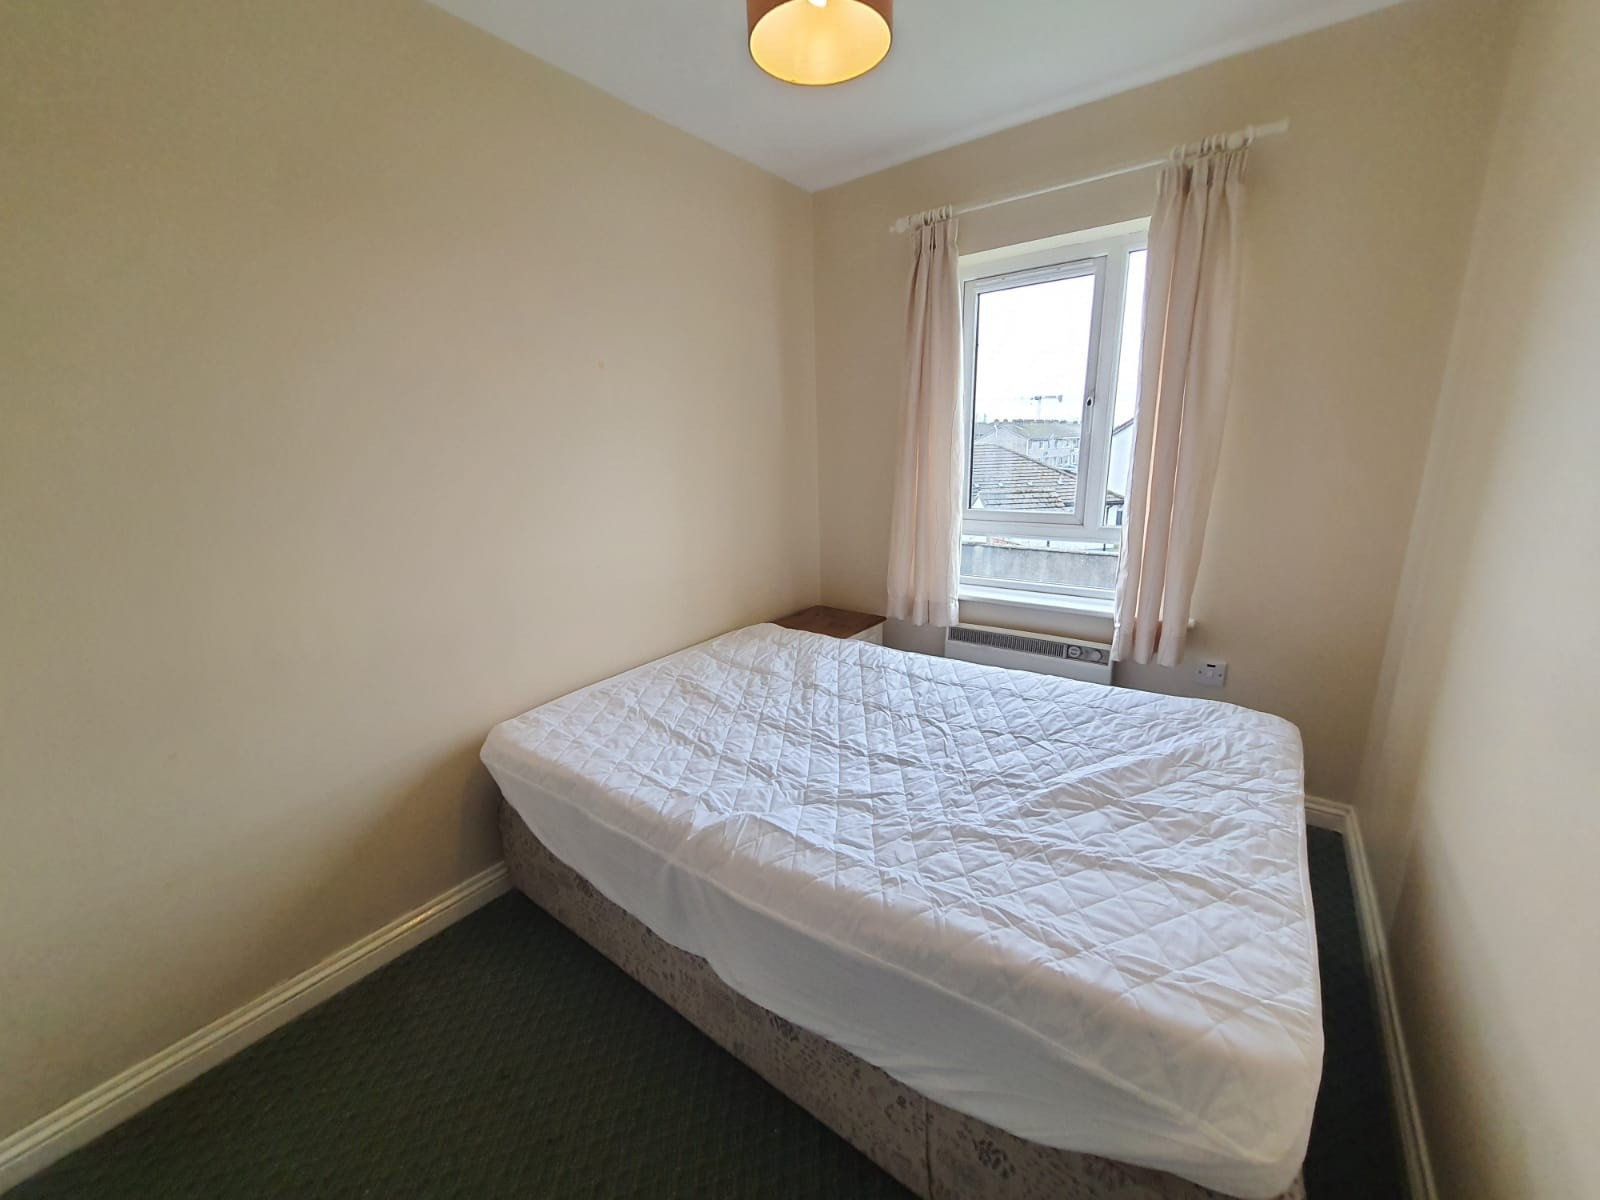 Apartment 12, Green View House, Galway City, Co. Galway